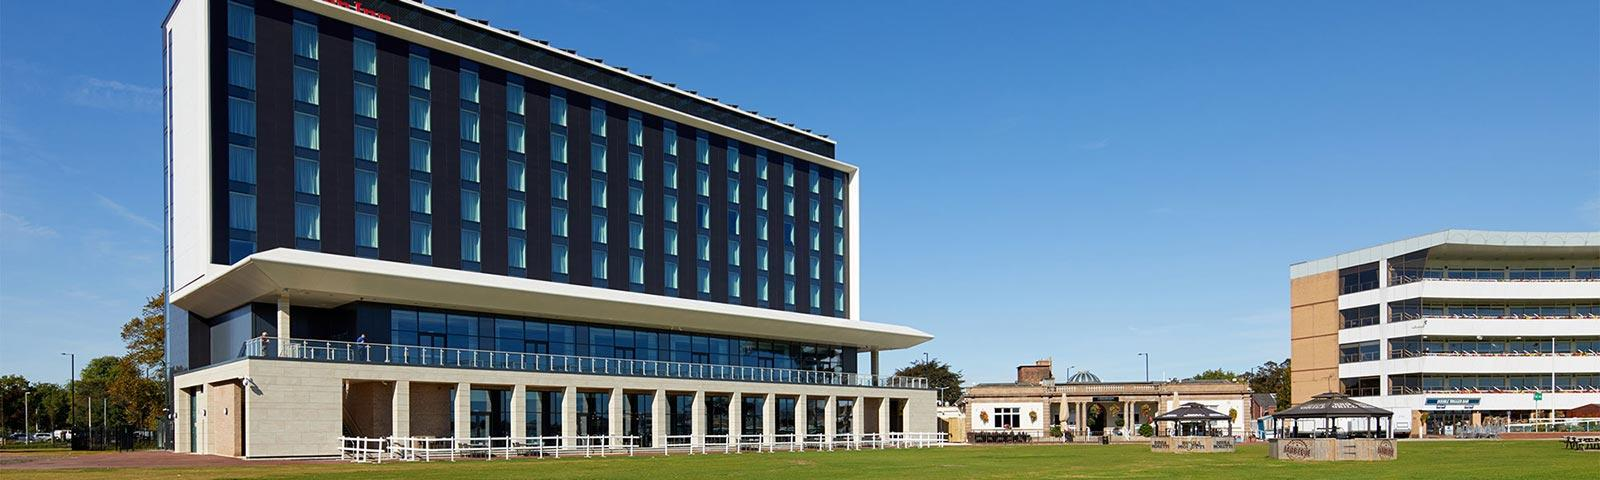 External view of the new Hilton hotel at Doncaster Racecourse.